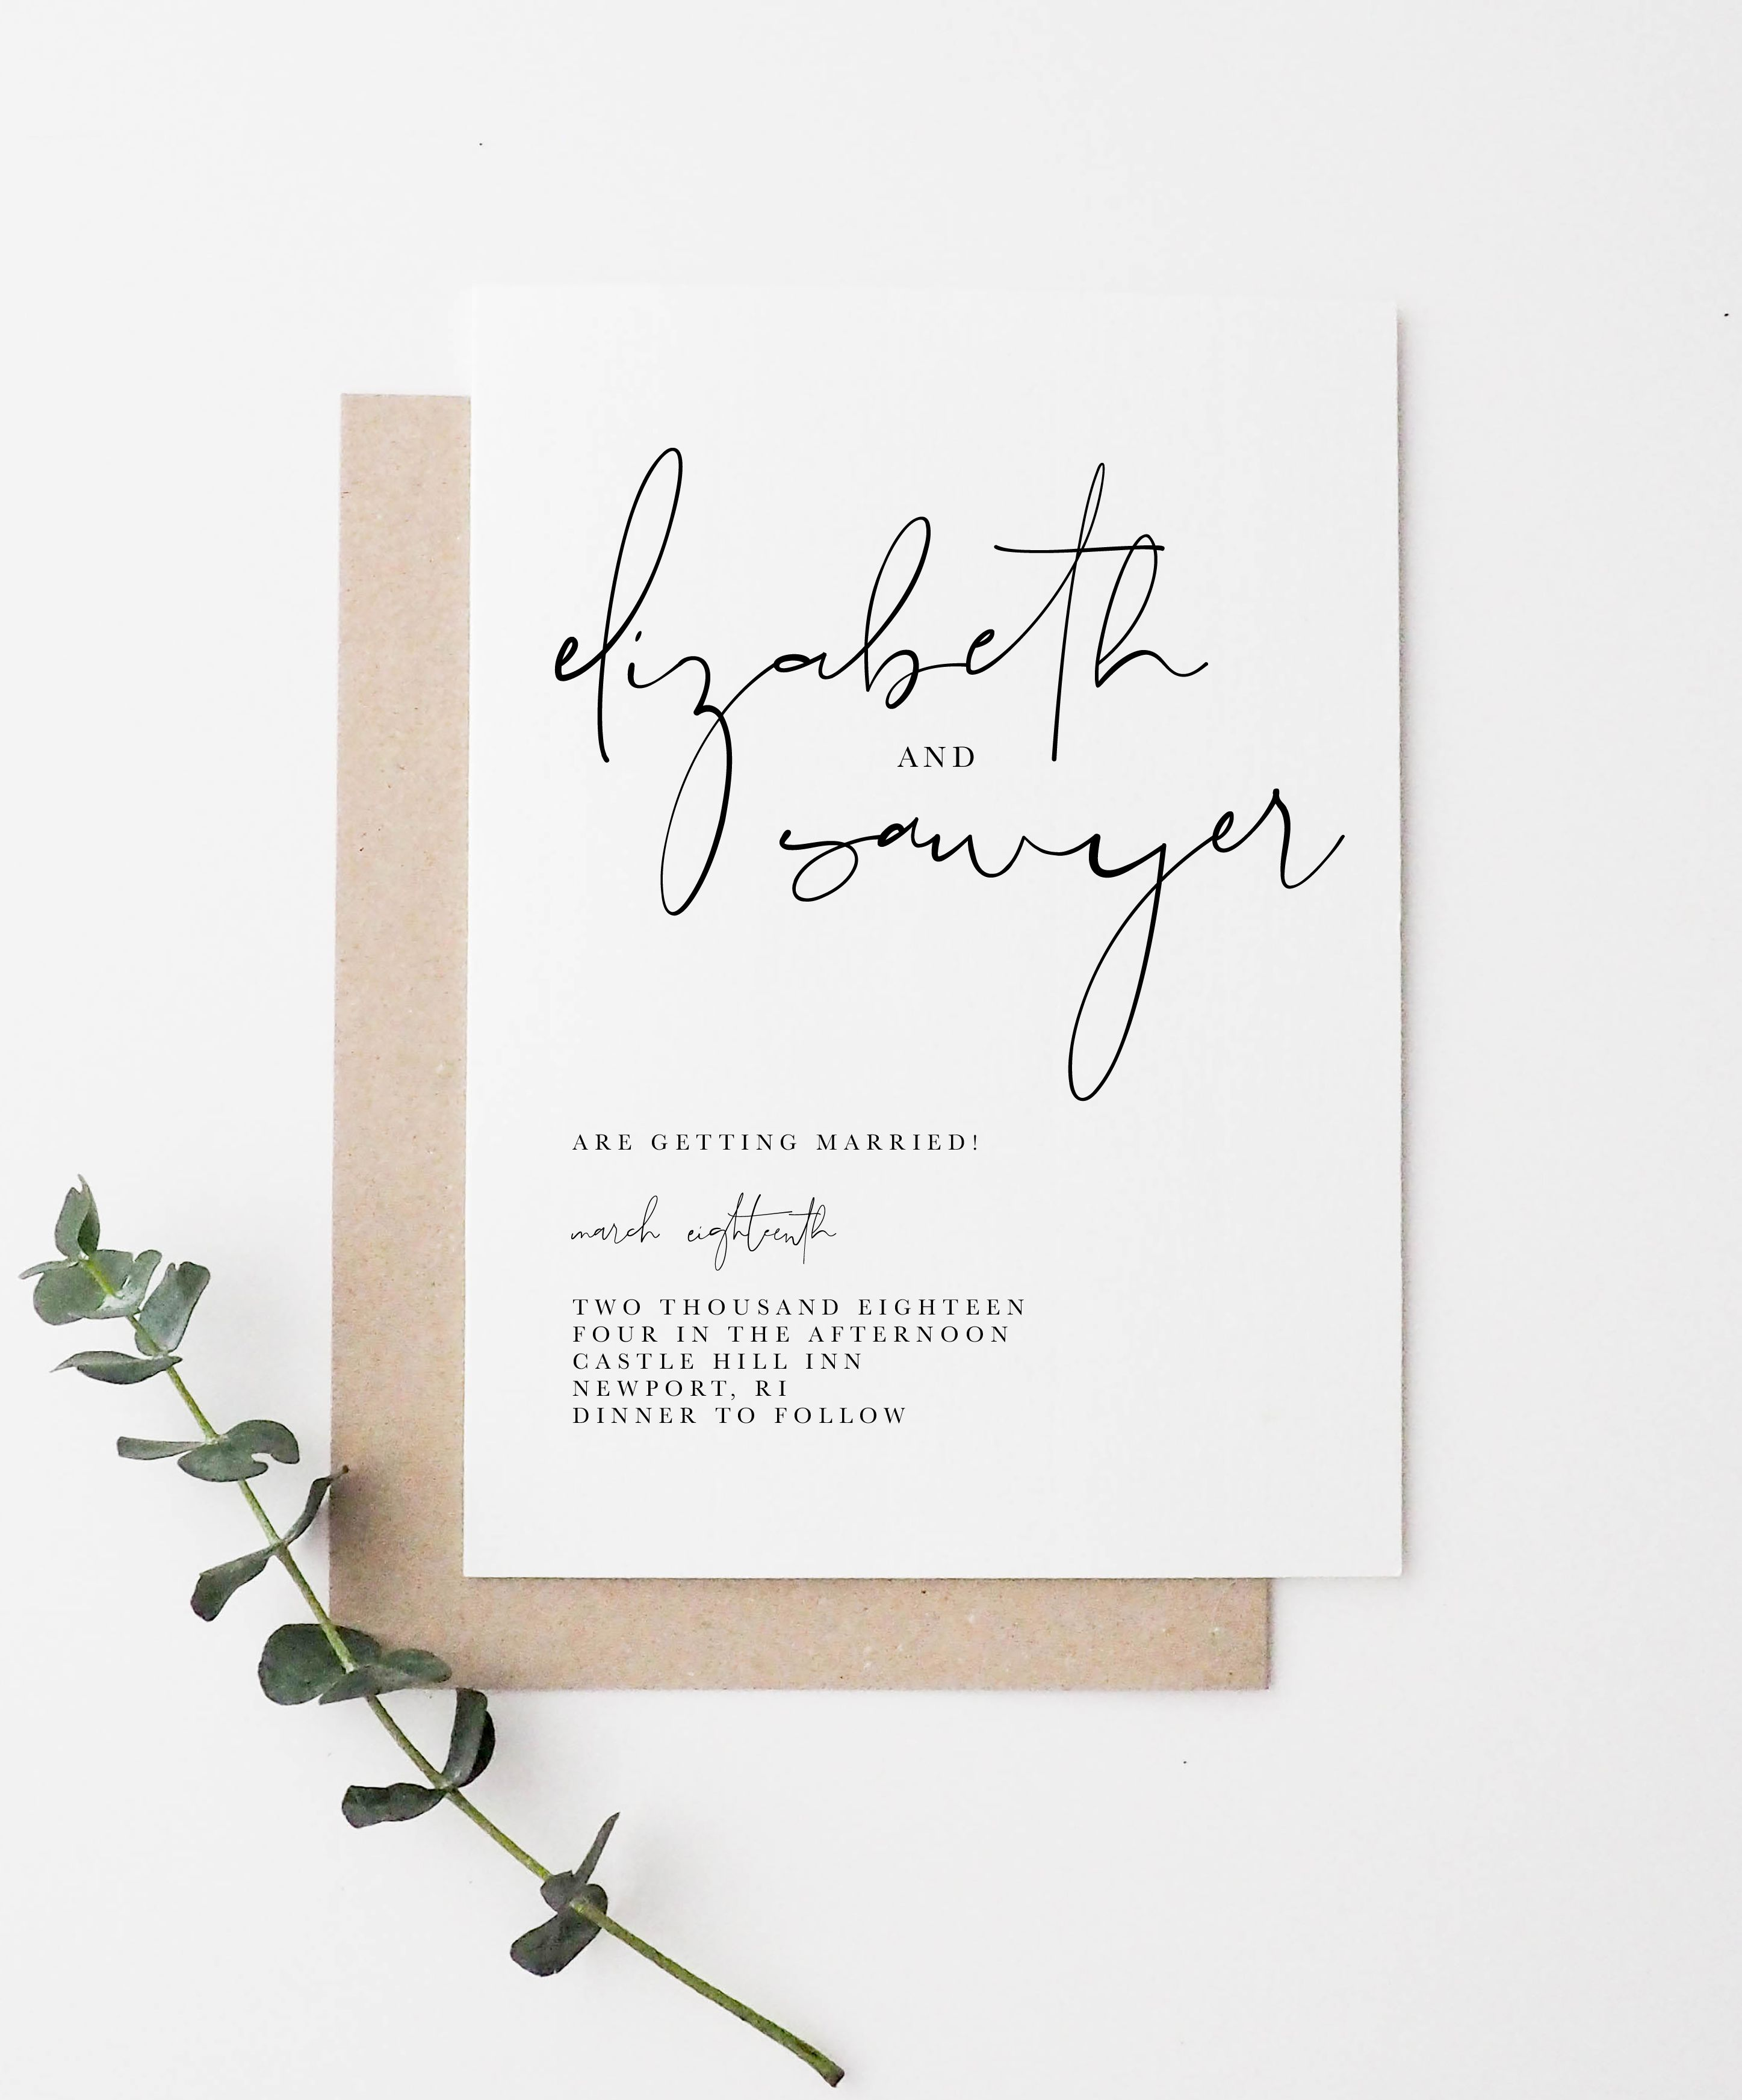 Gallery Minimalist Wedding Invitations: Minimal Wedding Invitation